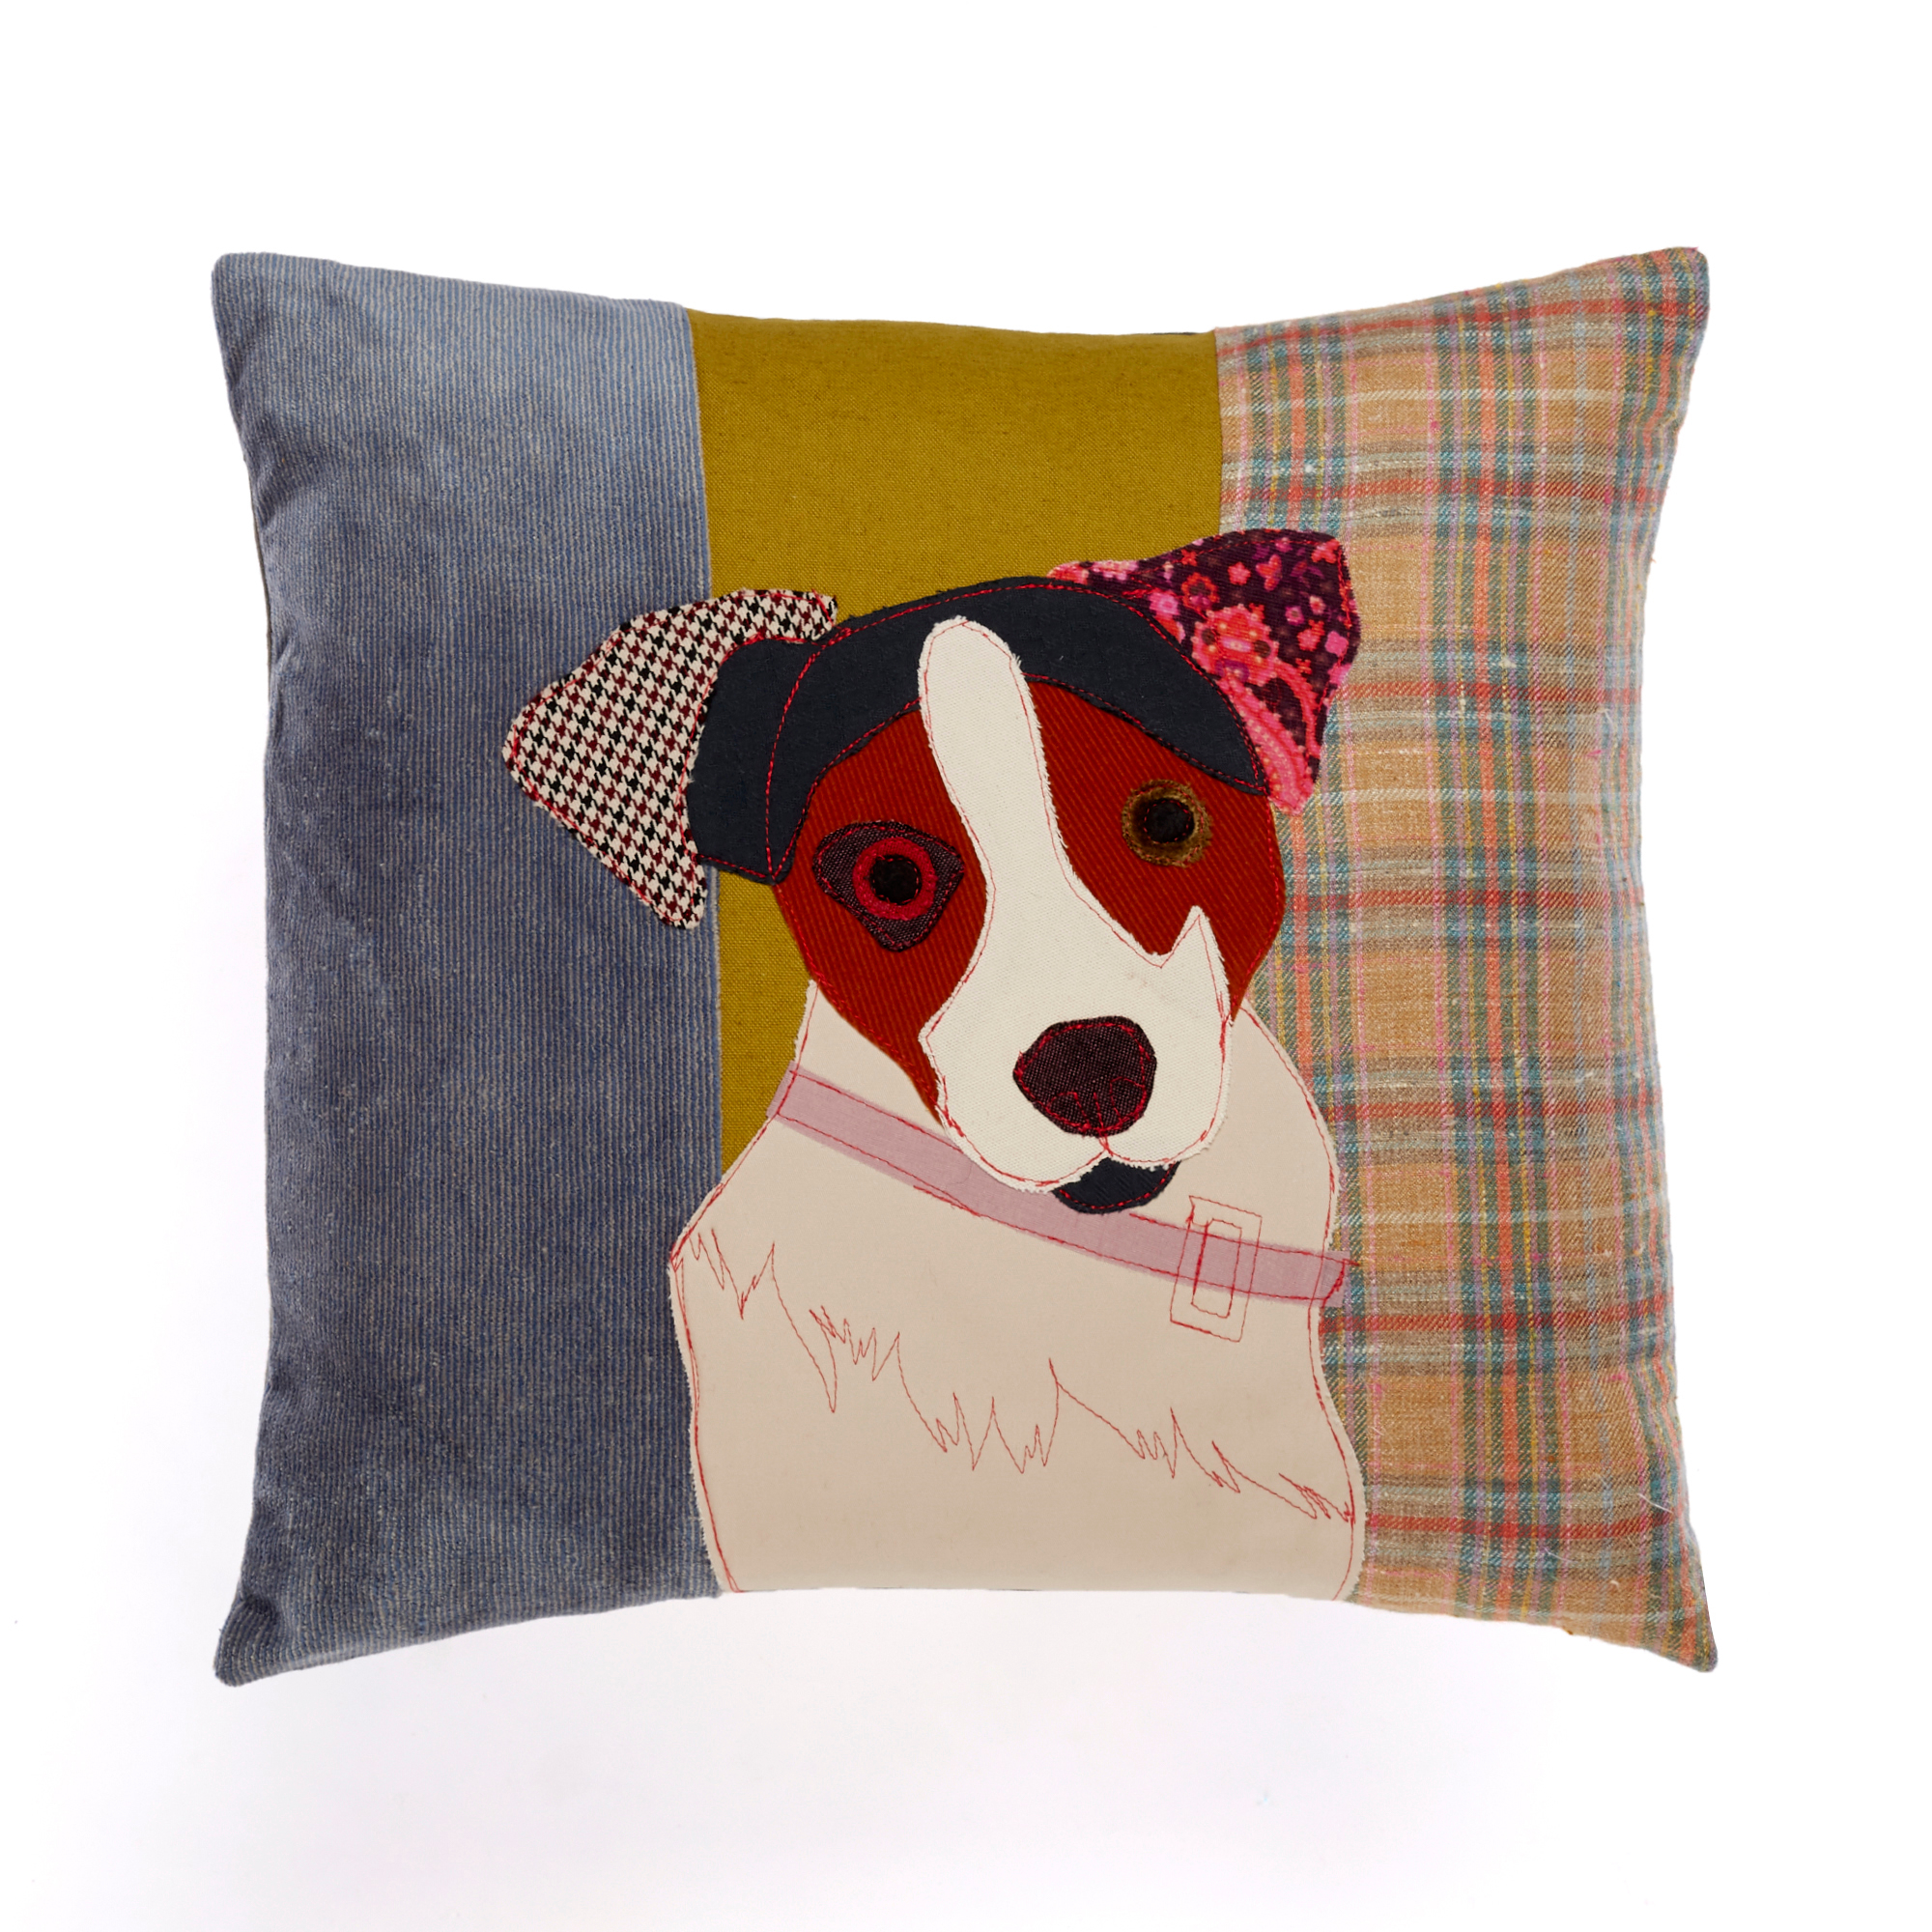 Man's Best Friend Pillow, Jack Russell